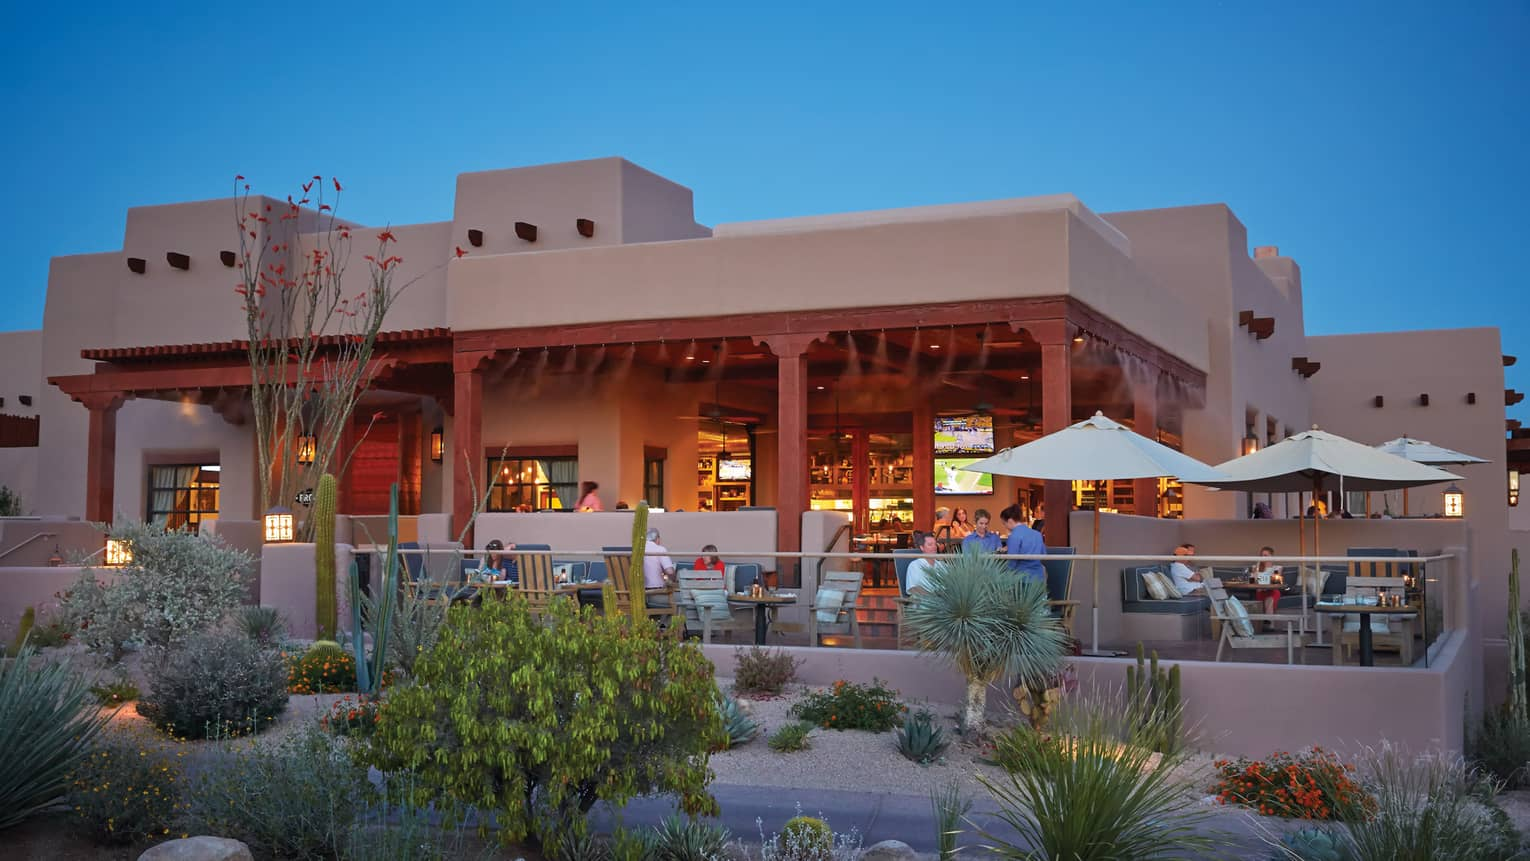 Proof restaurant lounge patio with dining tables, glass balcony, white building exterior, desert shrubs at dusk